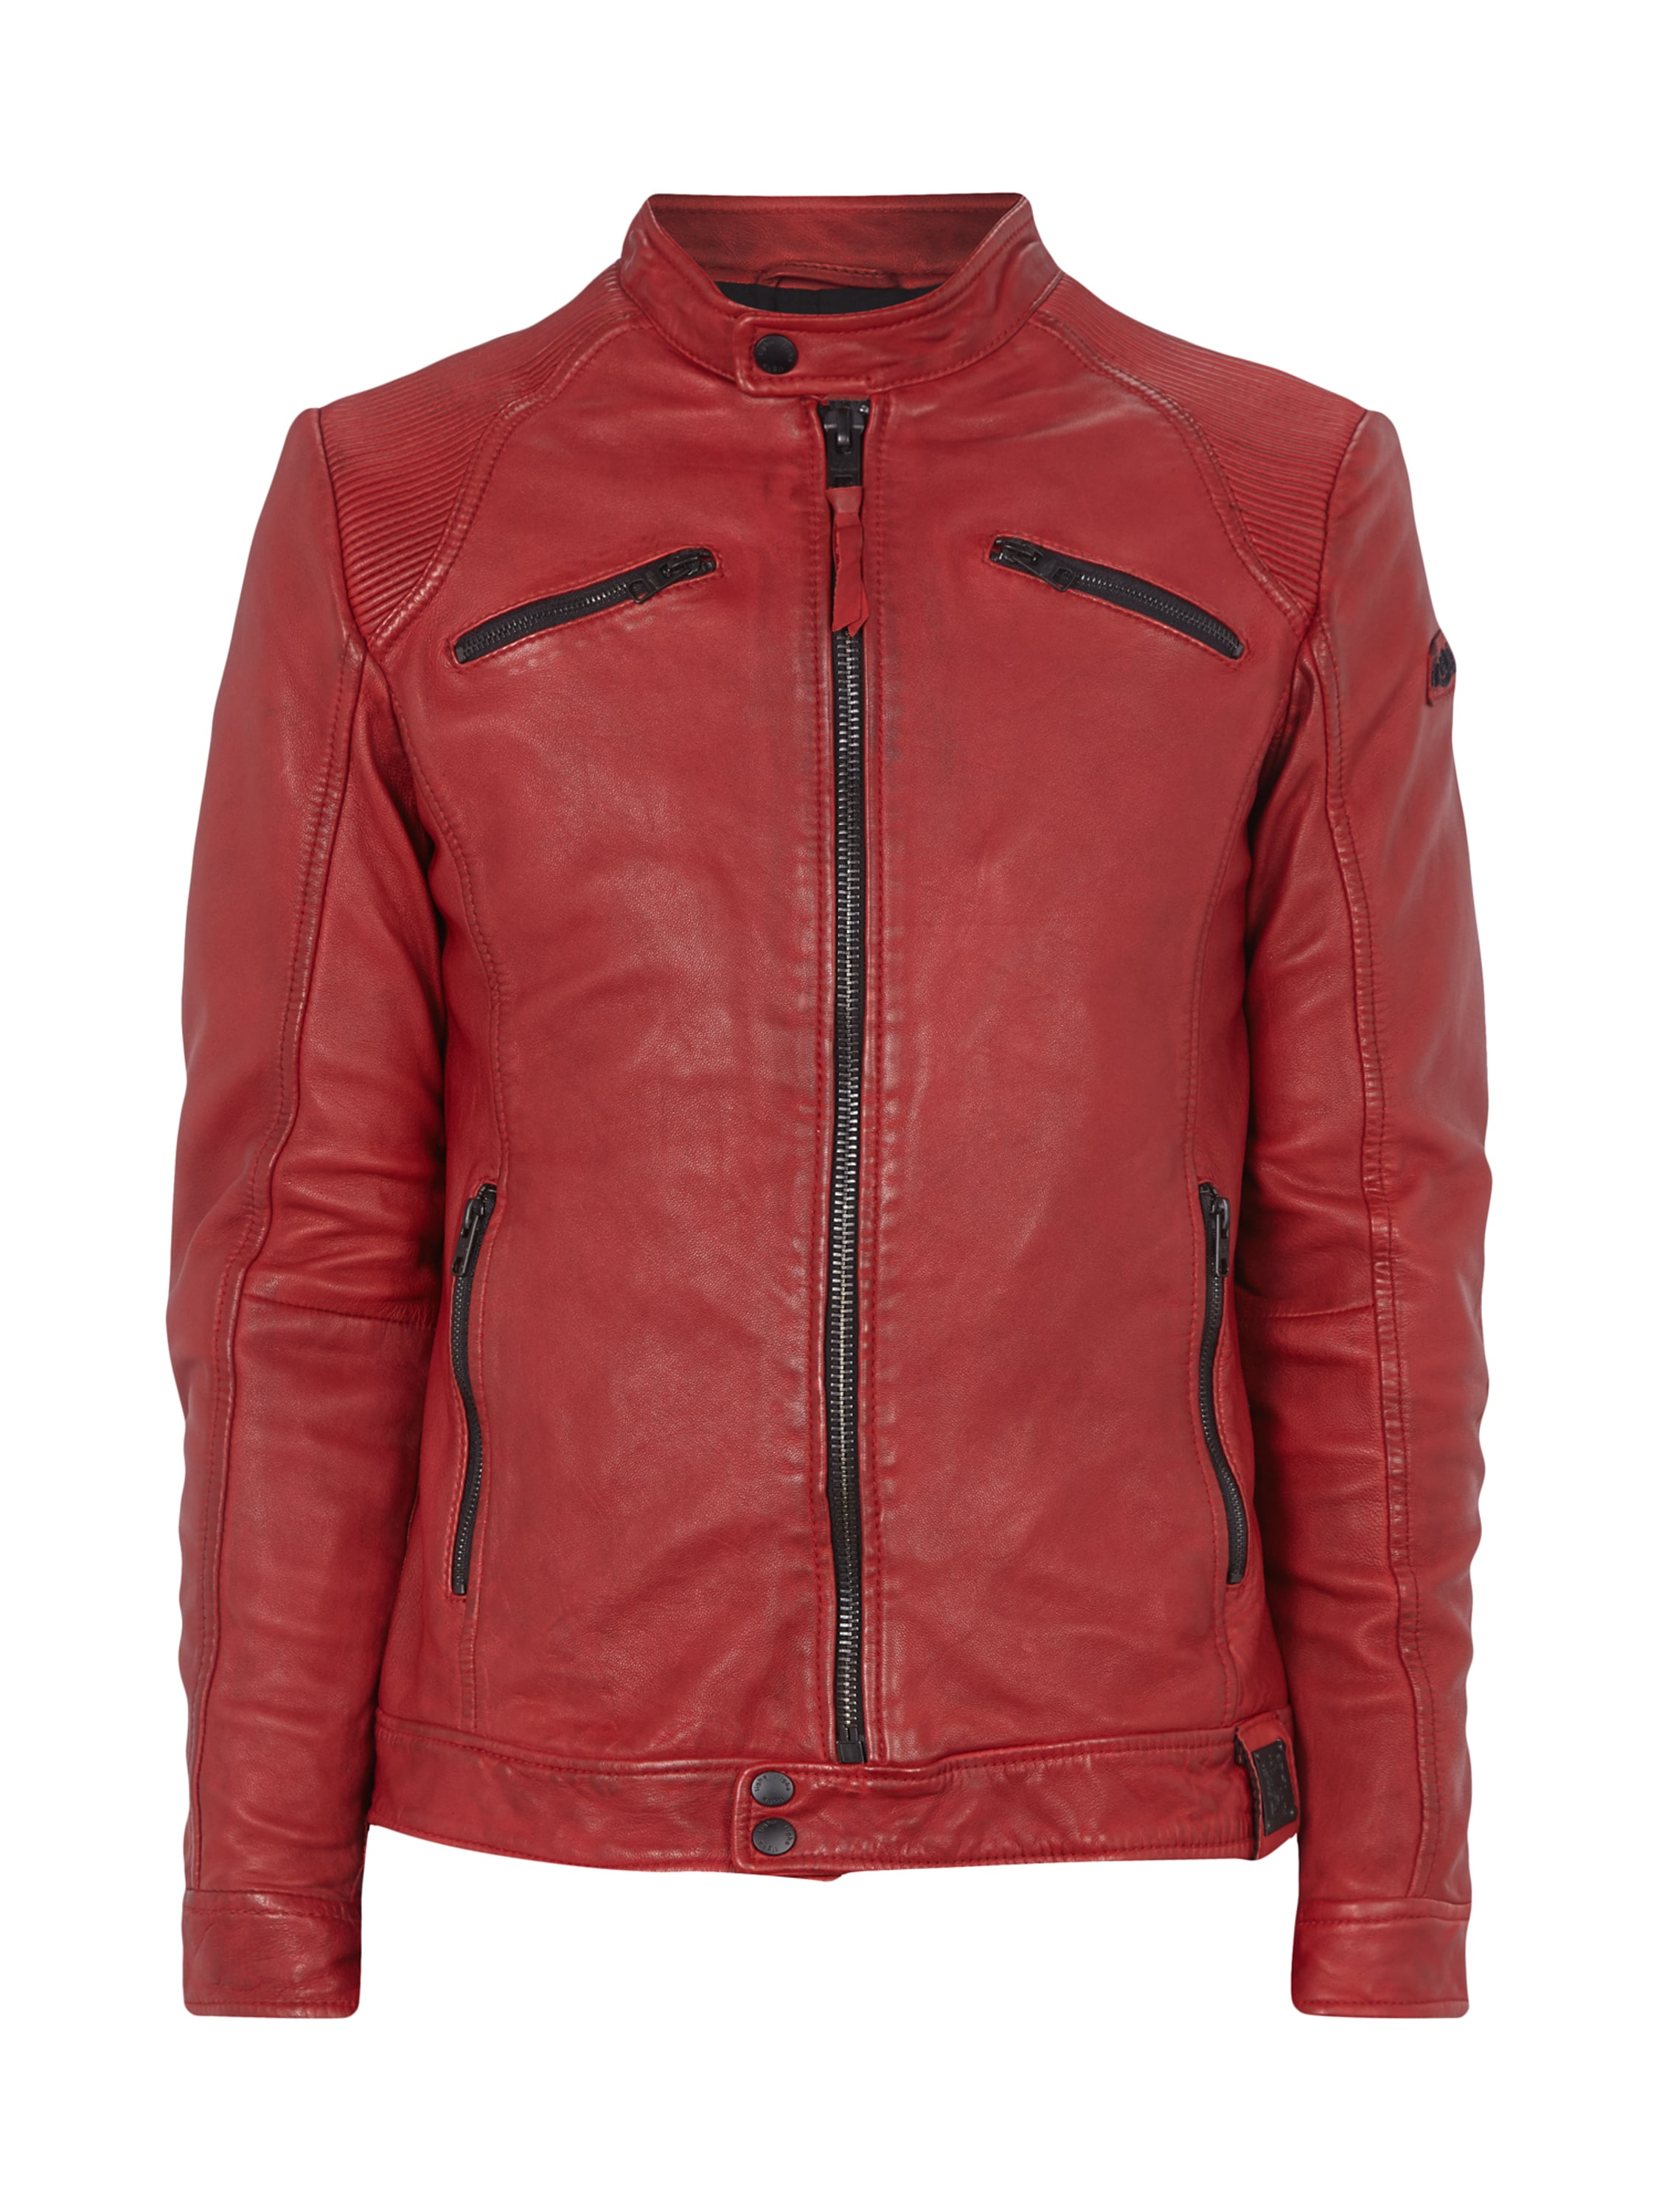 tigha lederjacke mit ellenbogen patches in rot online kaufen 9232375 fashion id online shop. Black Bedroom Furniture Sets. Home Design Ideas